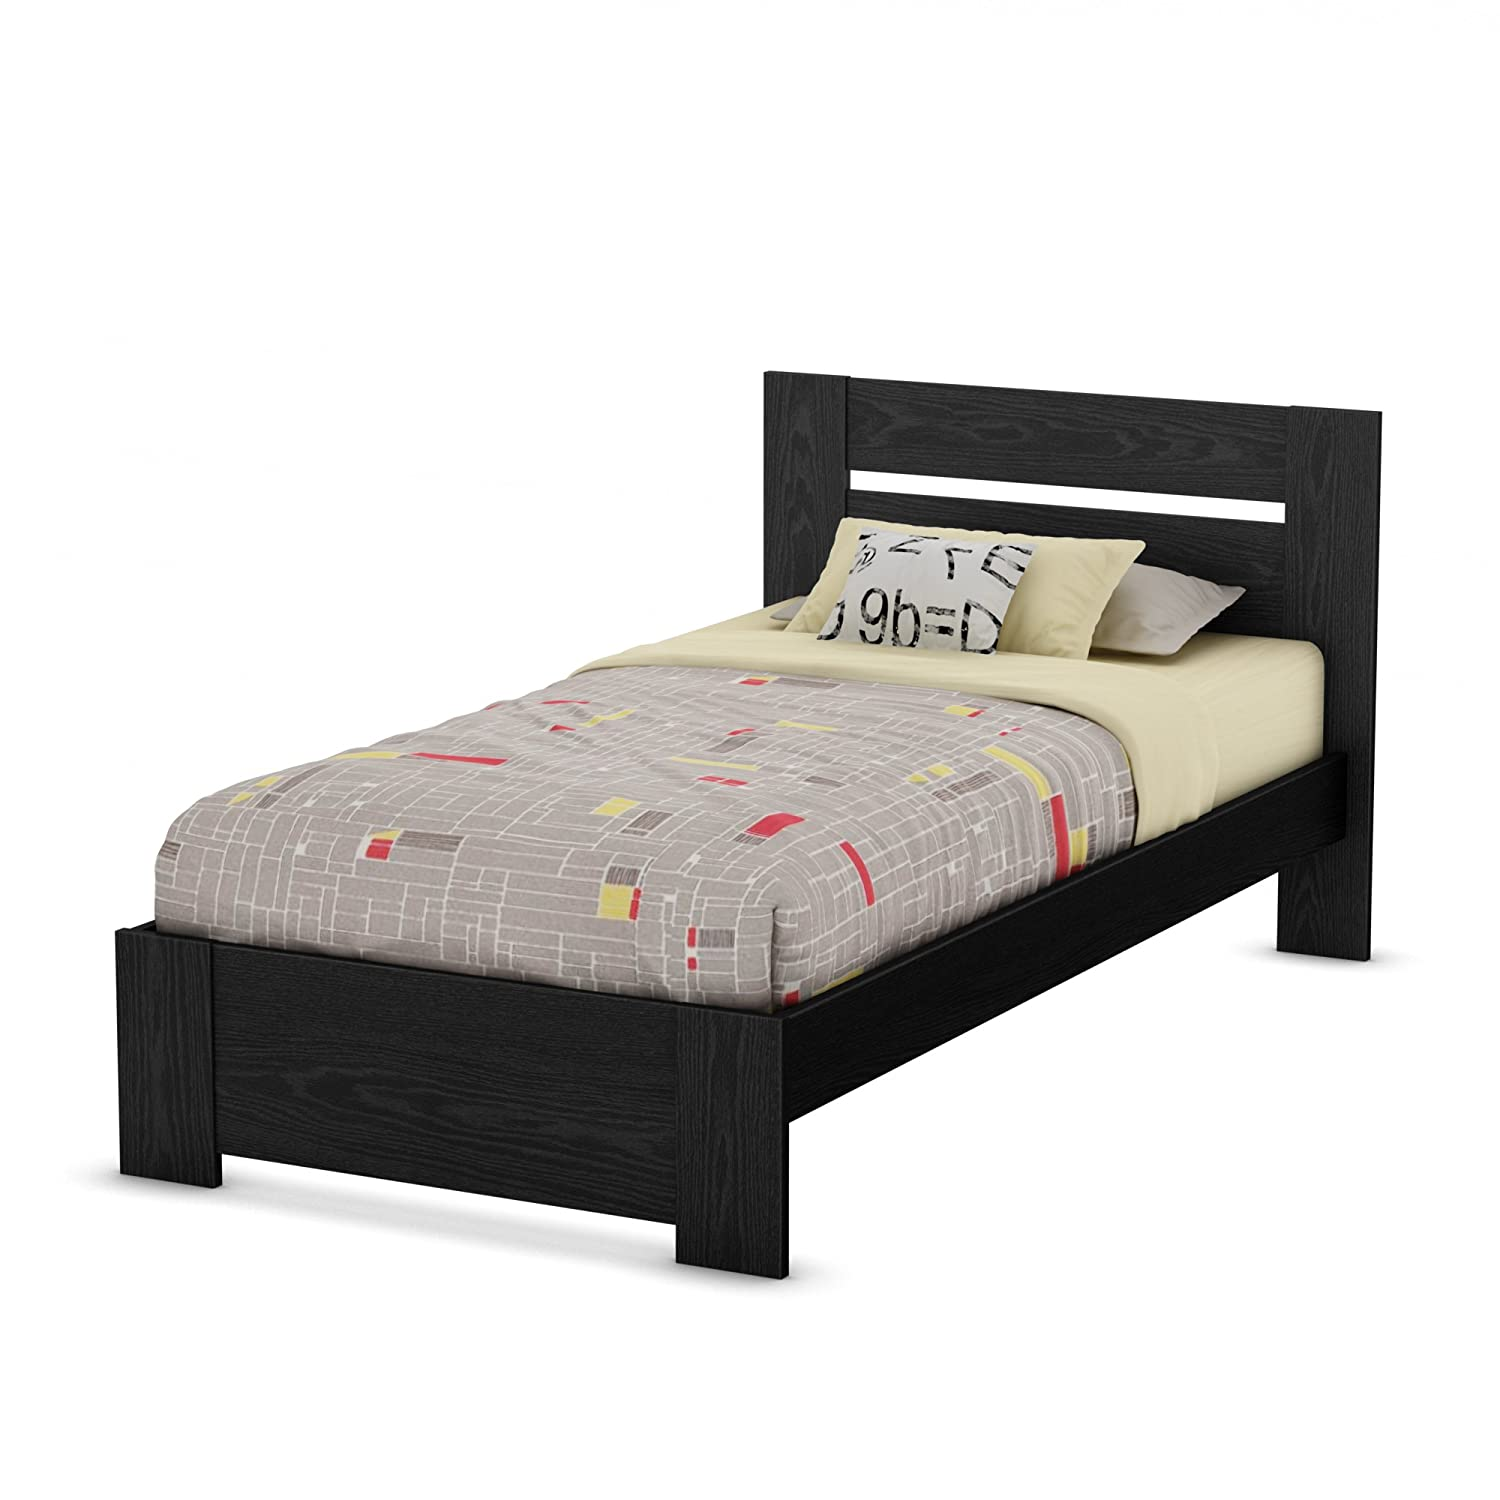 Amazon.com: South Shore Flexible Collection Twin Bed, Black Oak ...